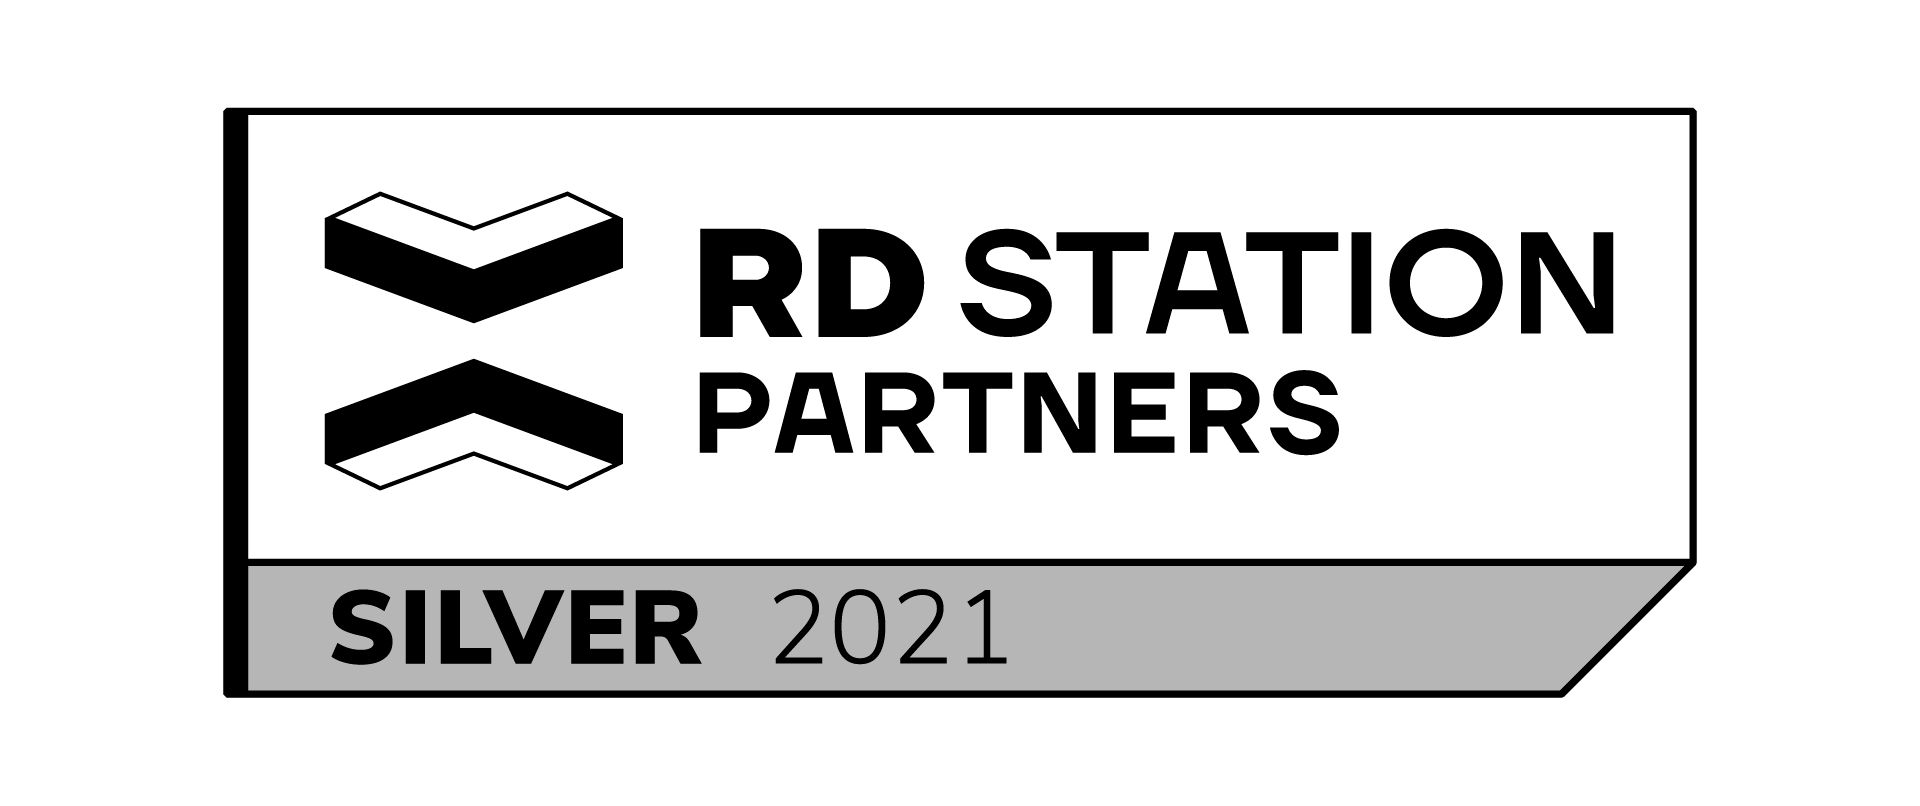 RD Station Partners 2020